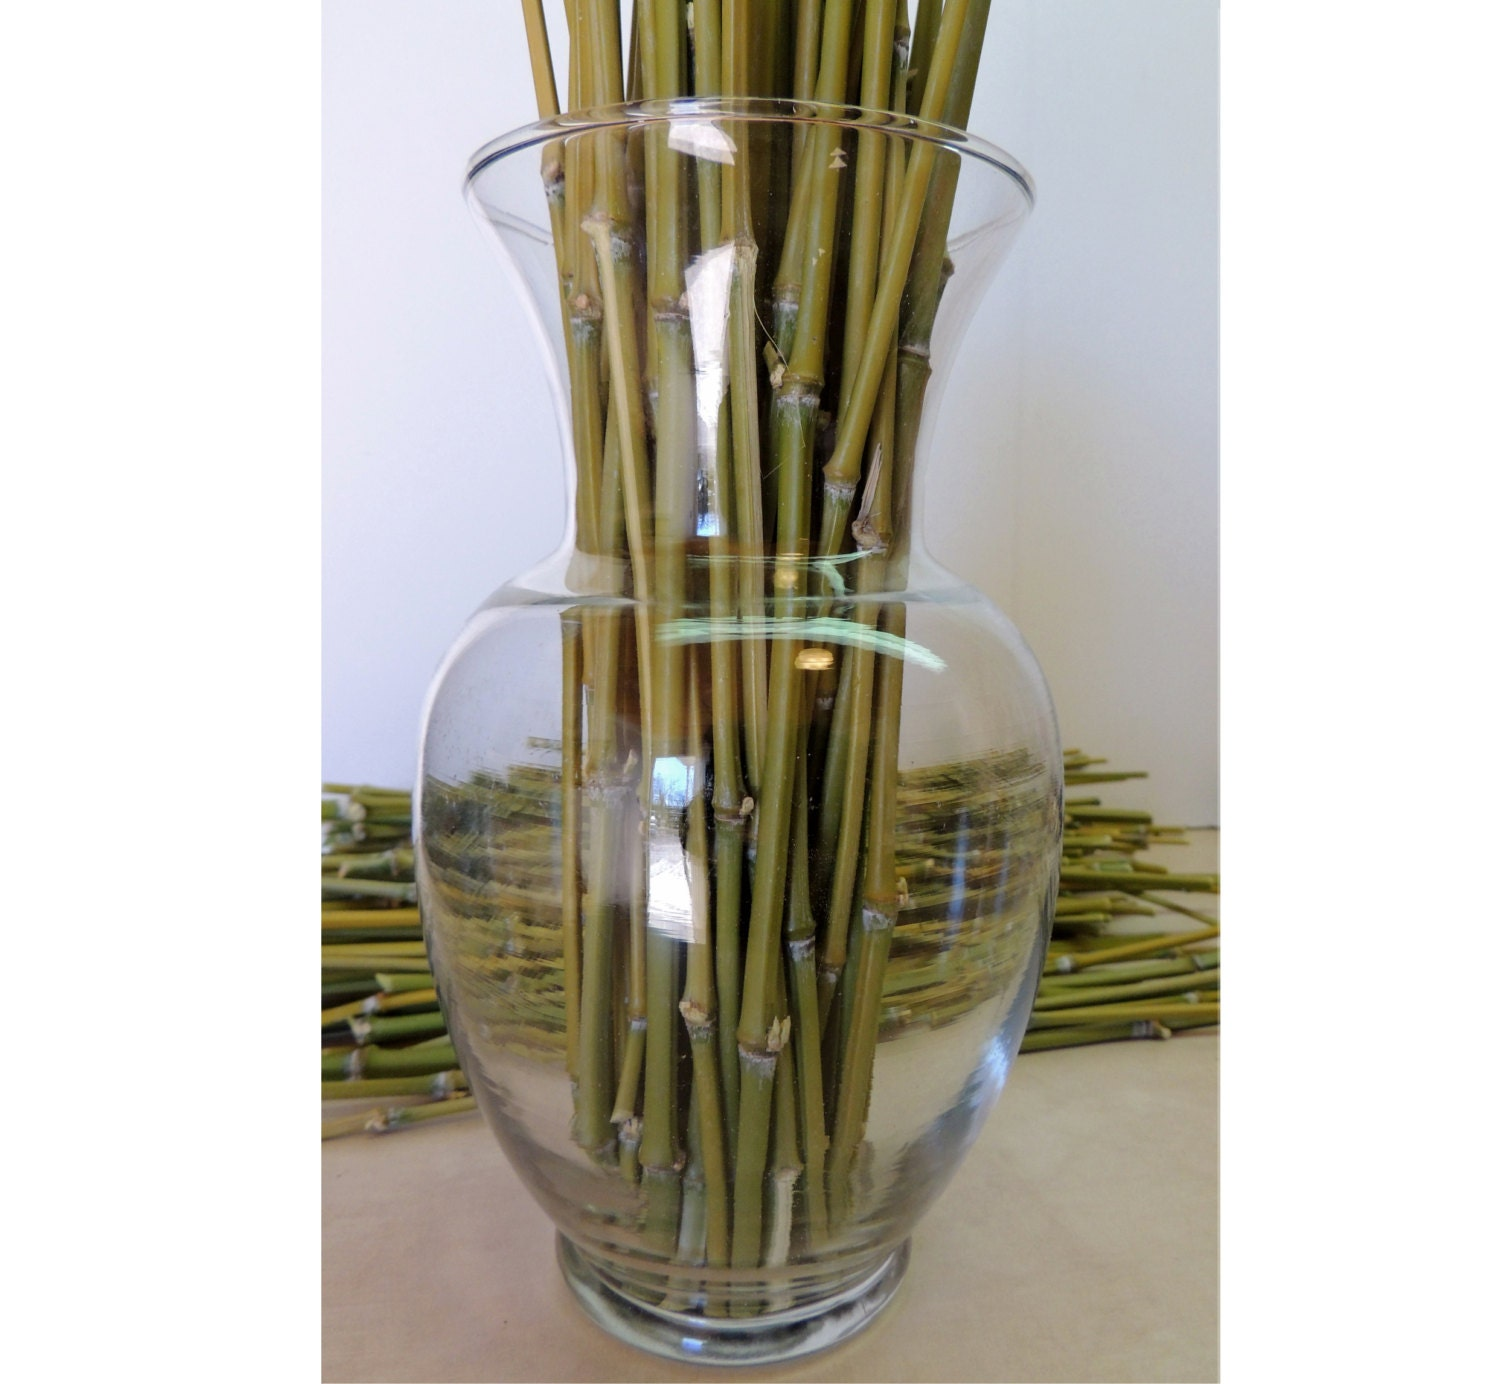 Lot of 24 Real Bamboo Sticks 12 long for Crafting by ...